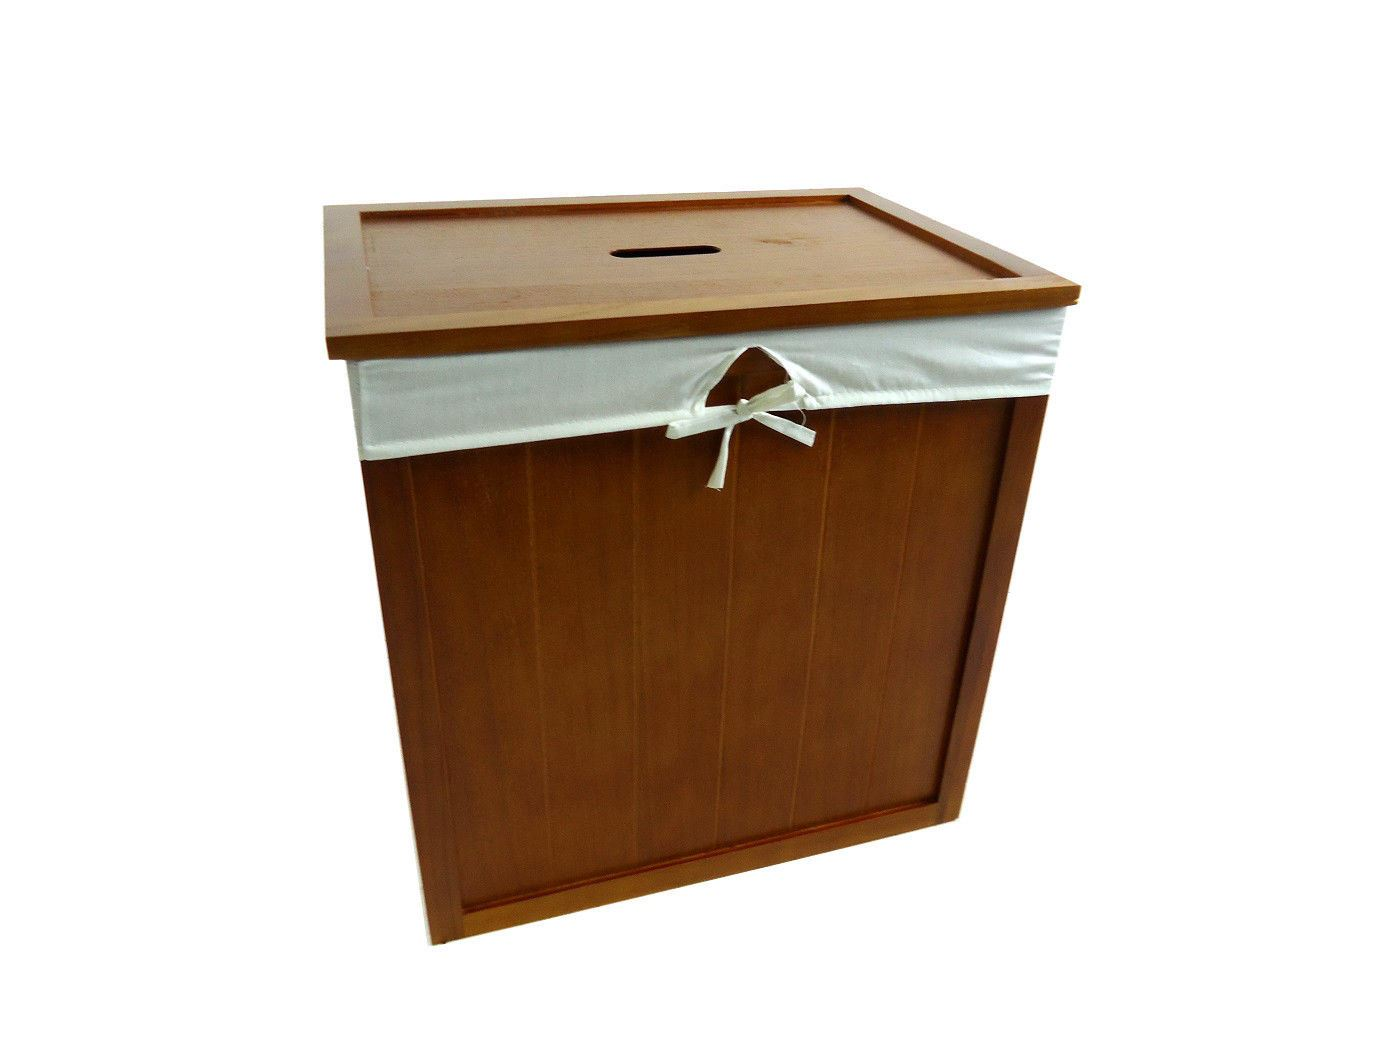 ... & DIY > Children's Home & Furniture > Furniture > Toy Boxes & Chests